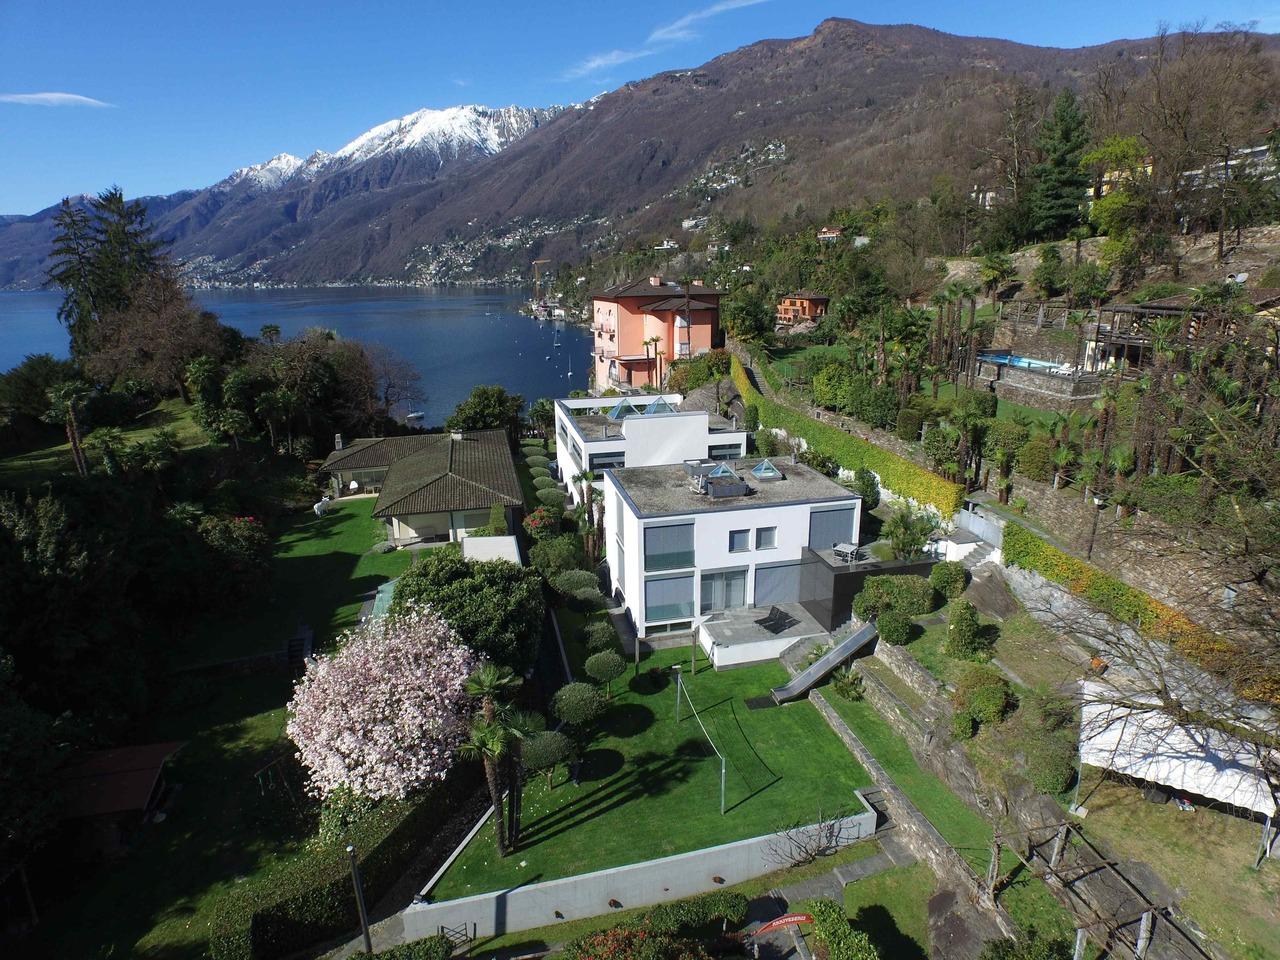 Single Family Home for Sale at Great contemporary villa with private beach, pool and guest house Ascona Locarno, Ticino 6600 Switzerland